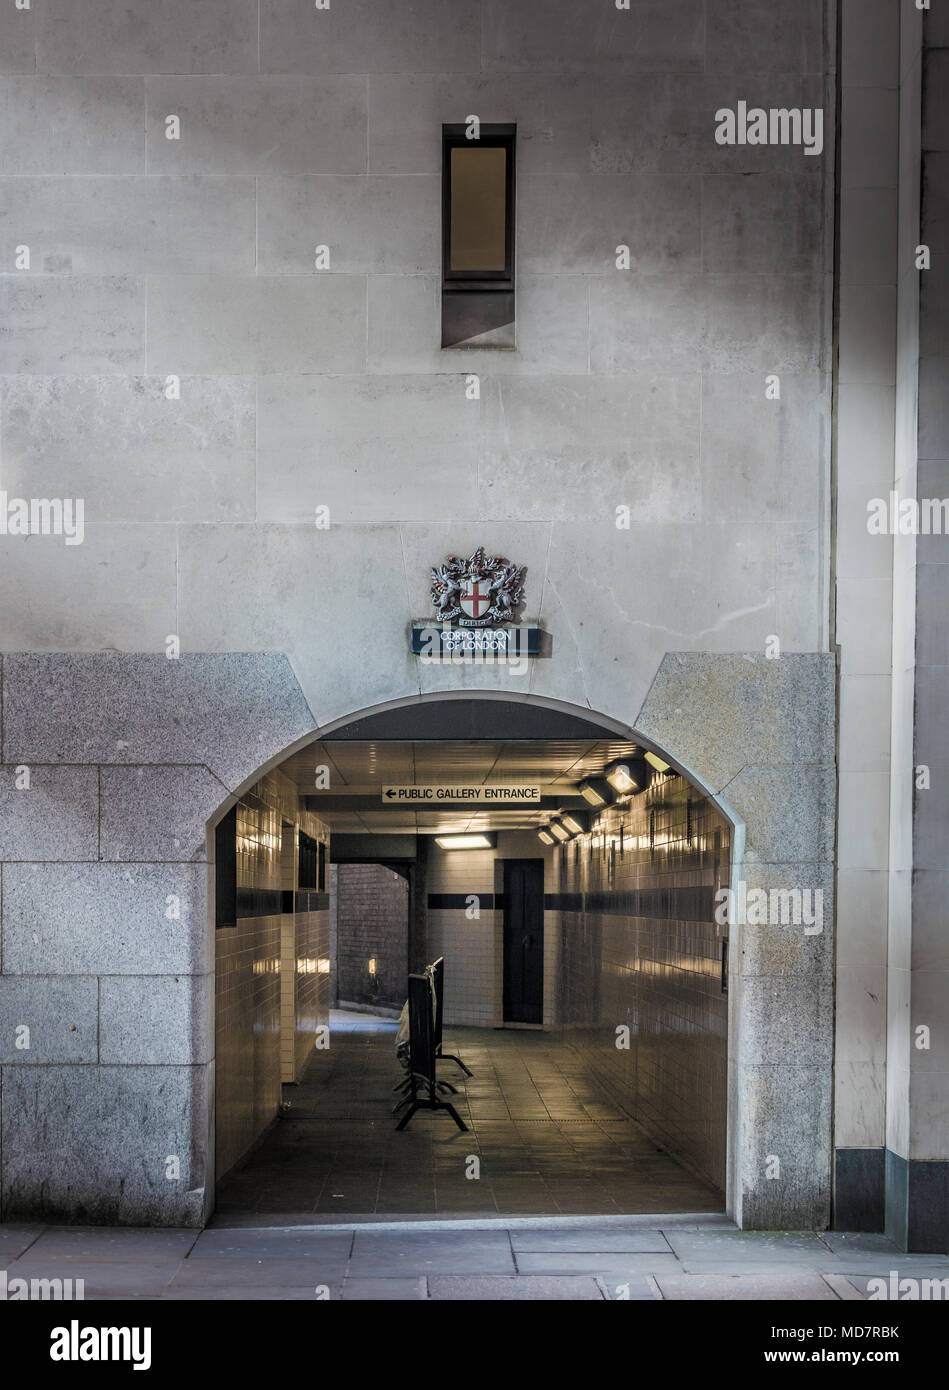 Warwick passage entrance to the public galleries at the Old Bailey, London, UK. - Stock Image